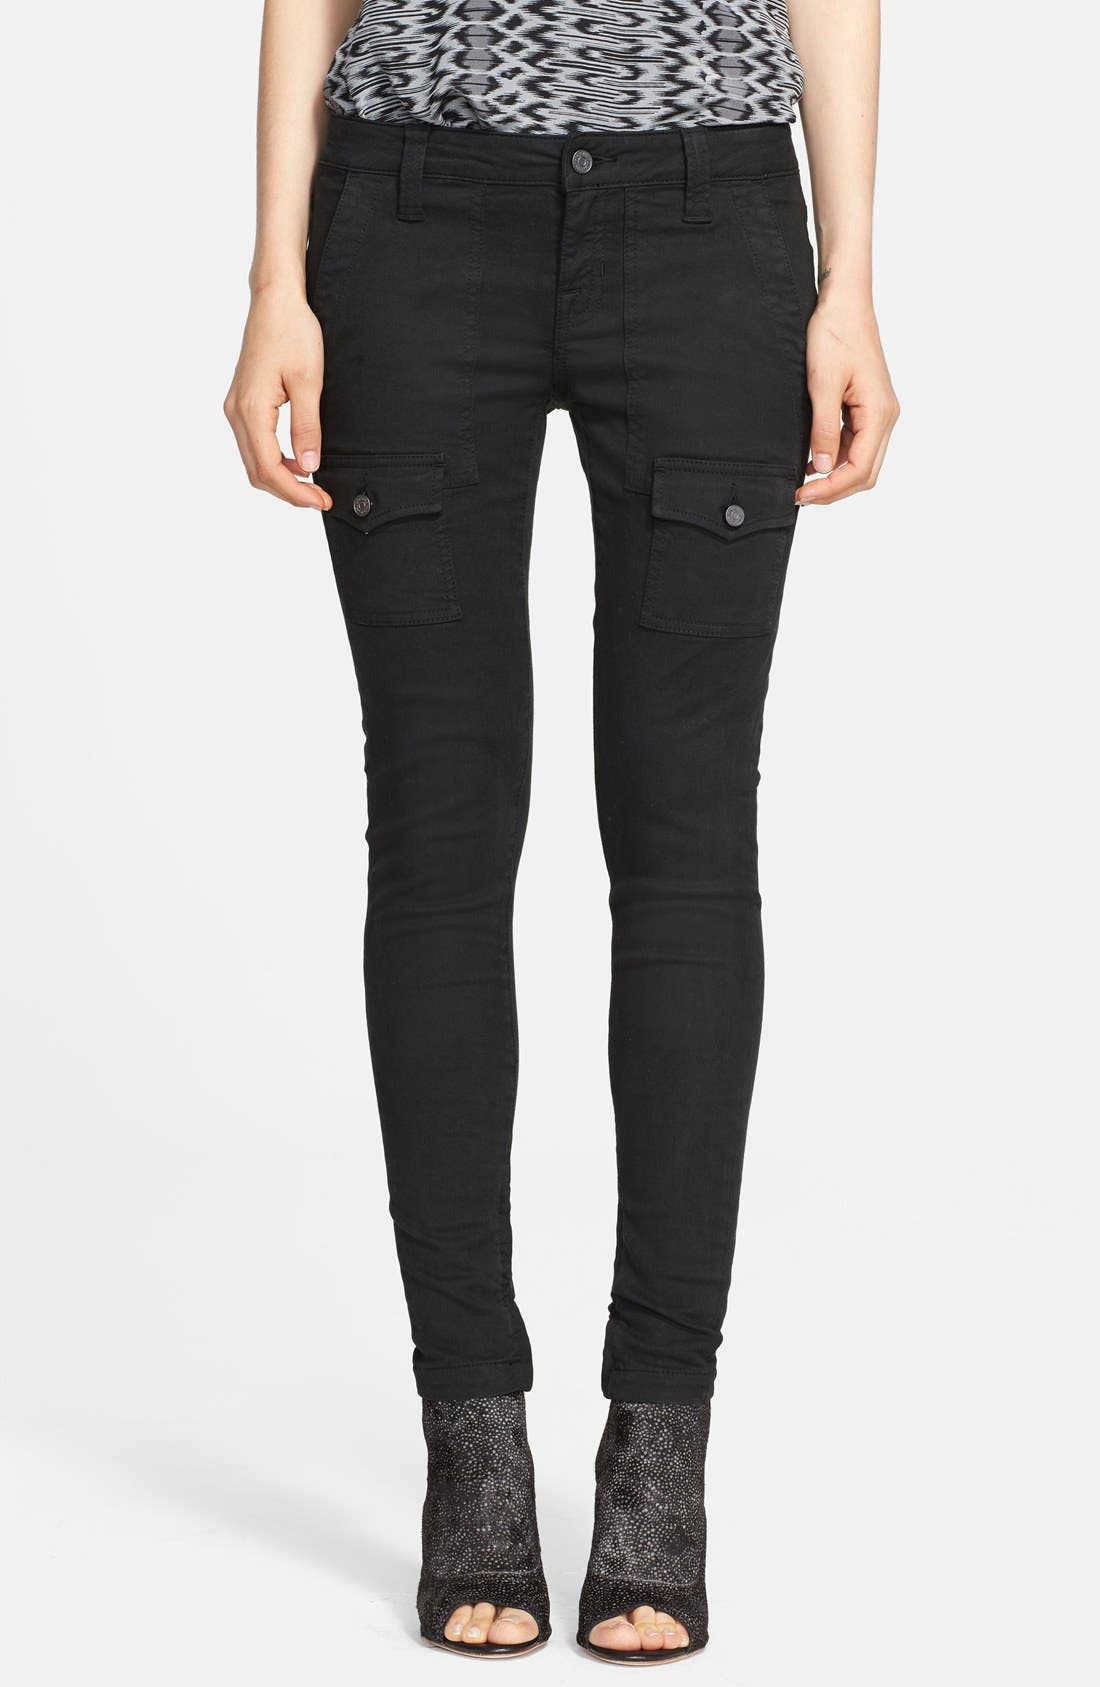 Alternate Image 1 Selected - Joie 'So Real' Cargo Stretch Skinny Jeans